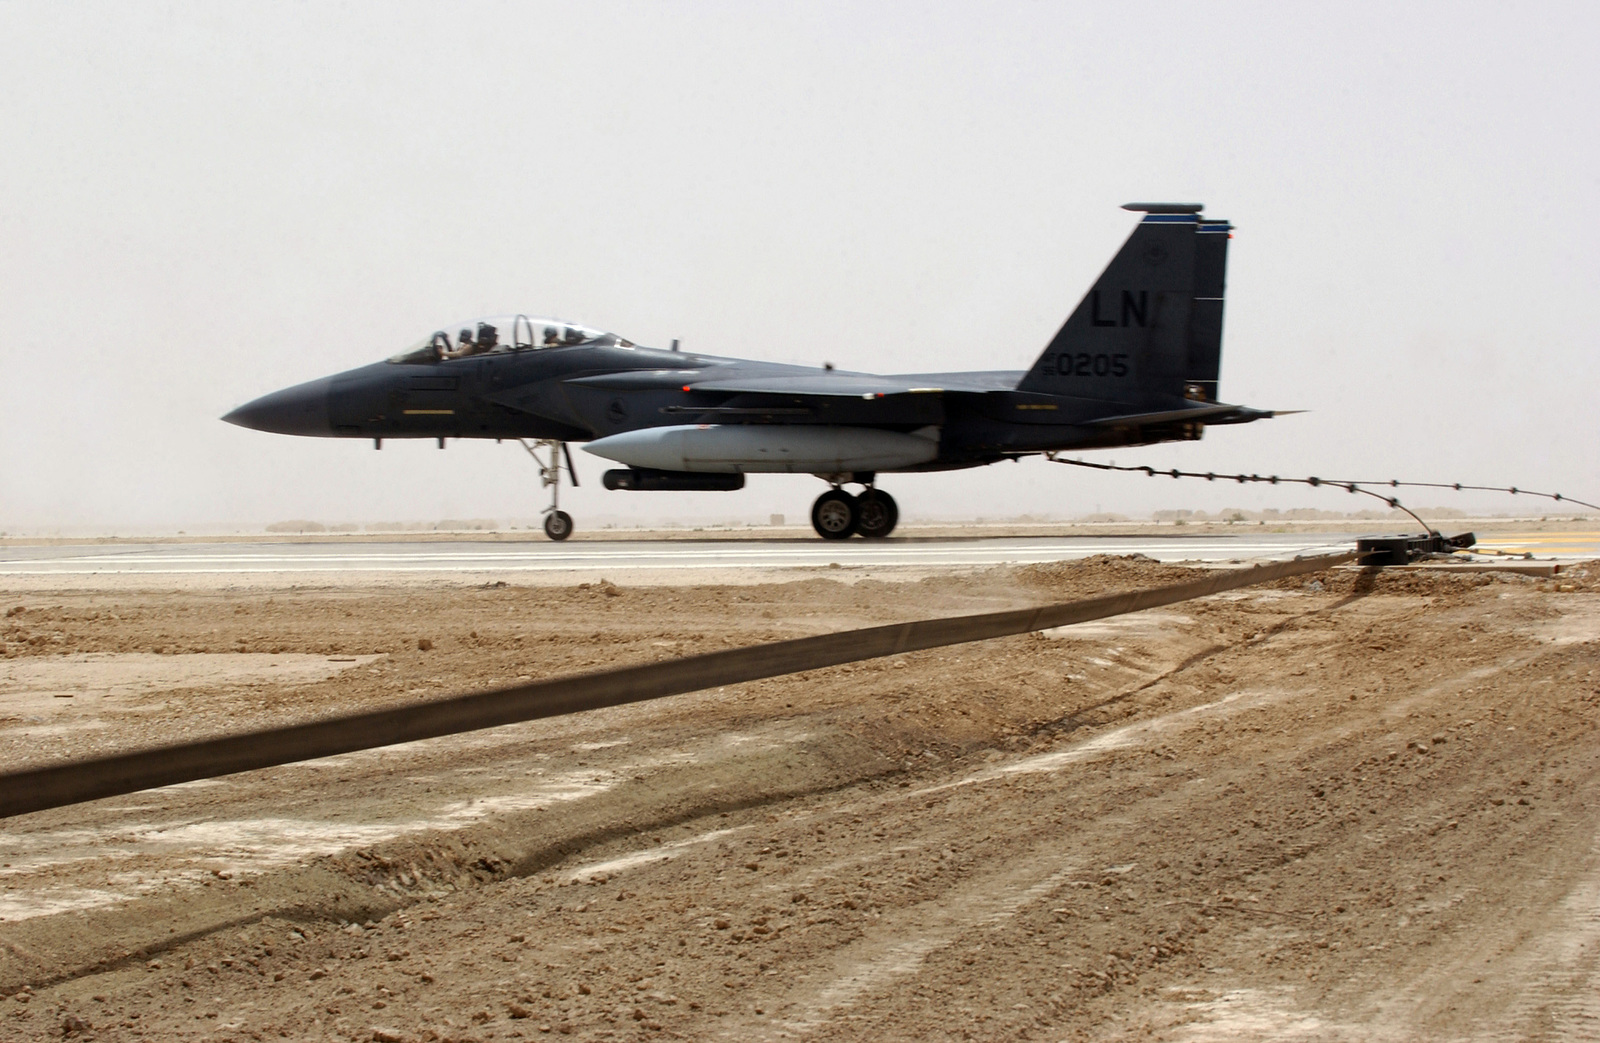 A US Air Force (USAF) F-15 Strike Eagle fighter aircraft from Royal